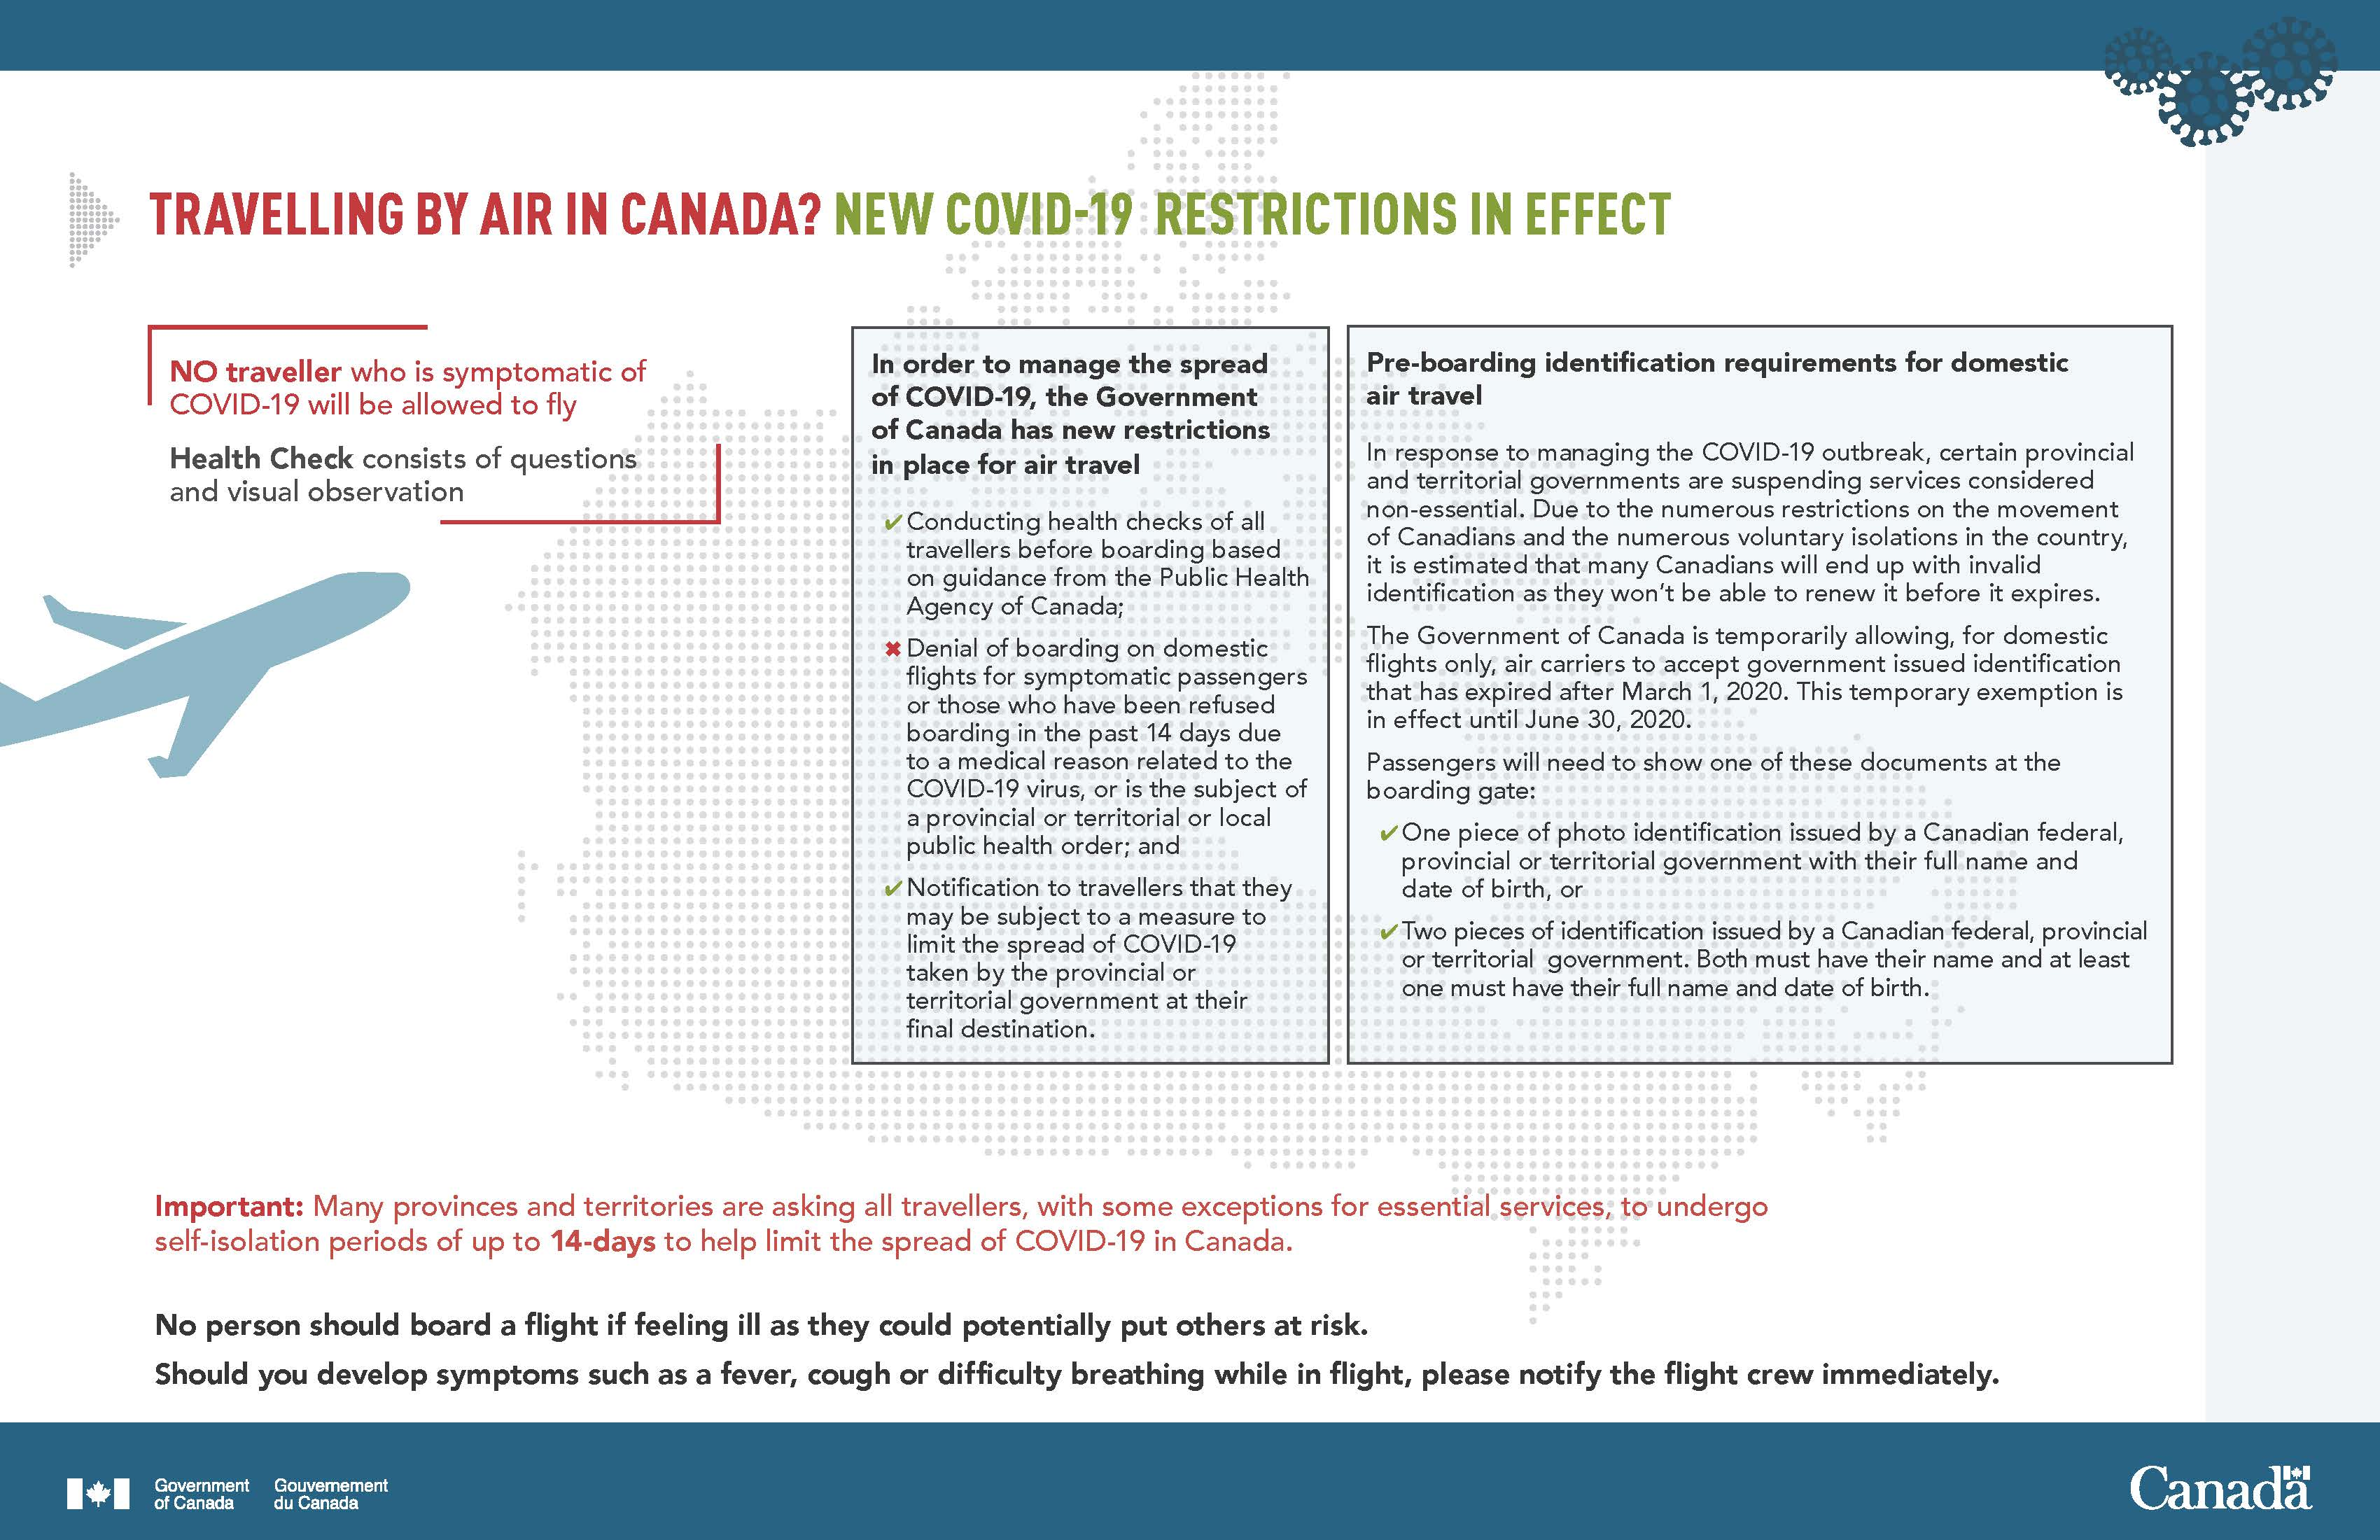 TRAVELLING BY AIR IN CANADA? NEW COVID-19 RESTRICTIONS IN EFFECT